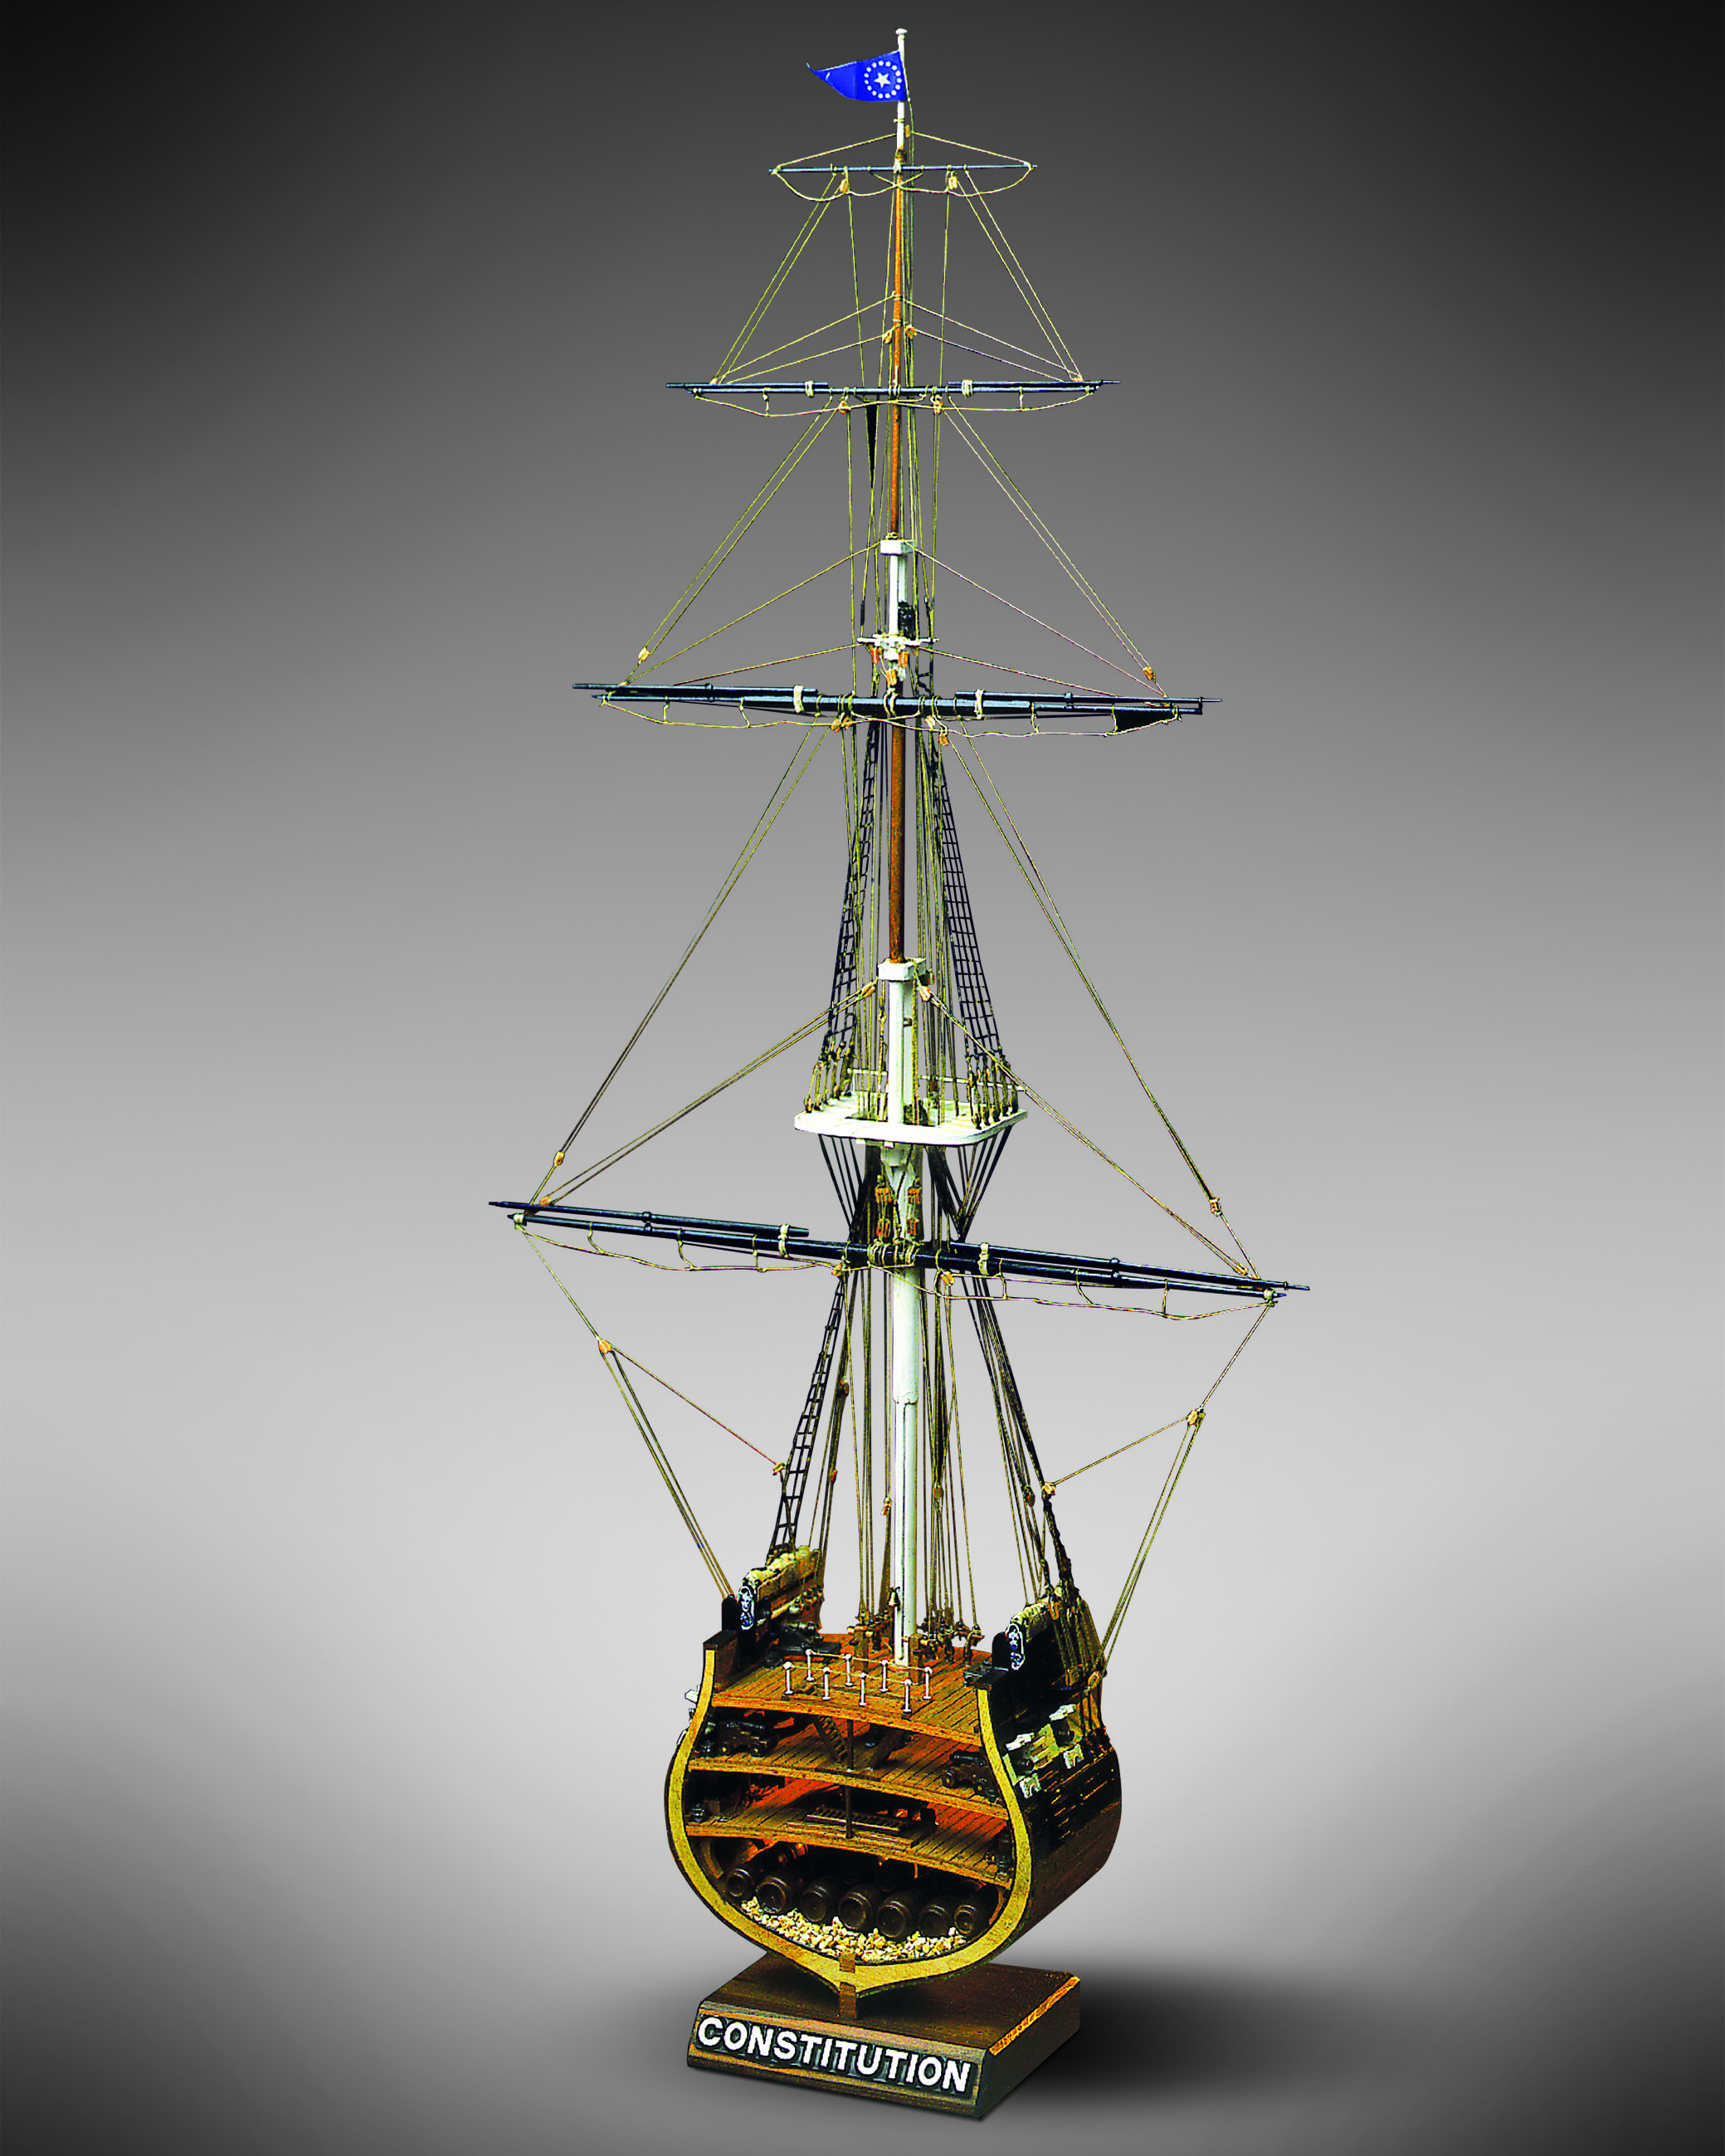 Mamoli Mv32 Uss Constitution Section Wood Plank On Frame Model Ship Kit Scale 1 93 Width 320 Mm 13 Height 667mm 26